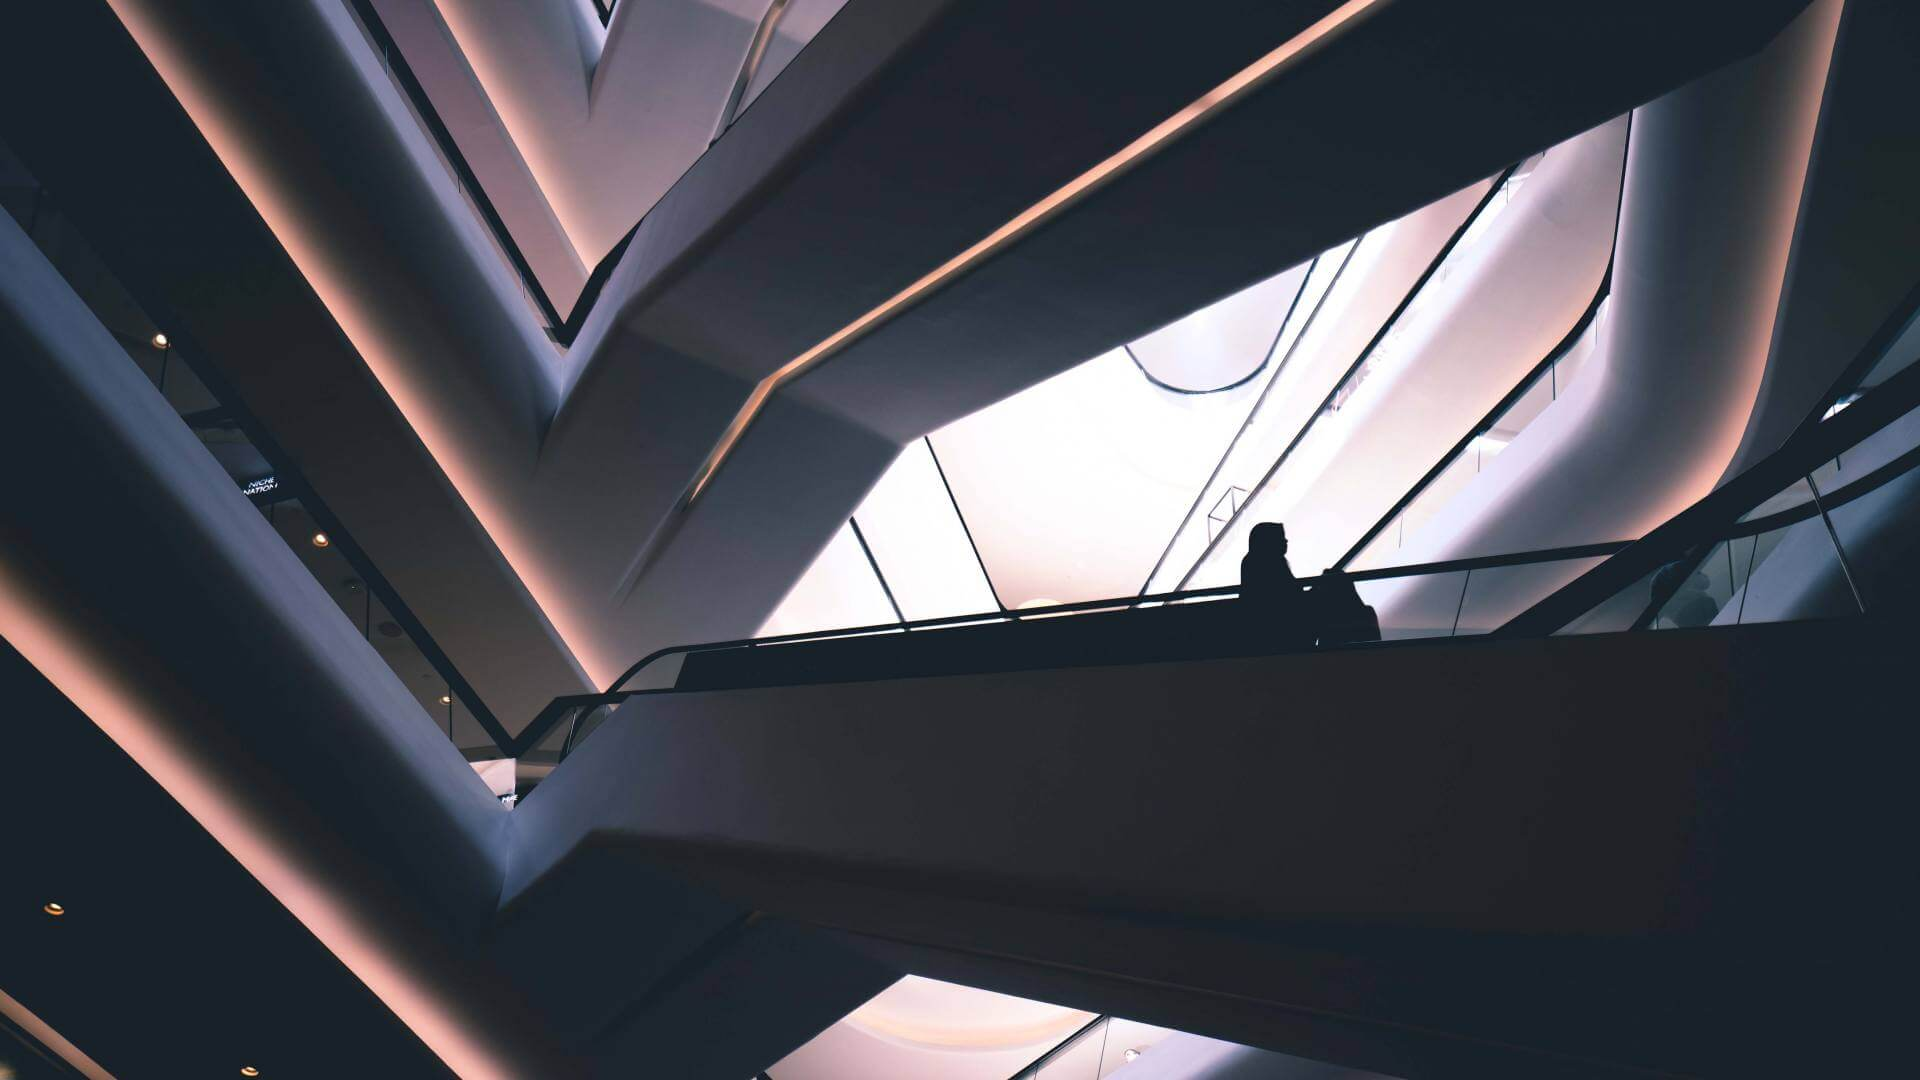 Silhouette of a person standing on an escalator in a shopping mall in Kuala Lumpur.